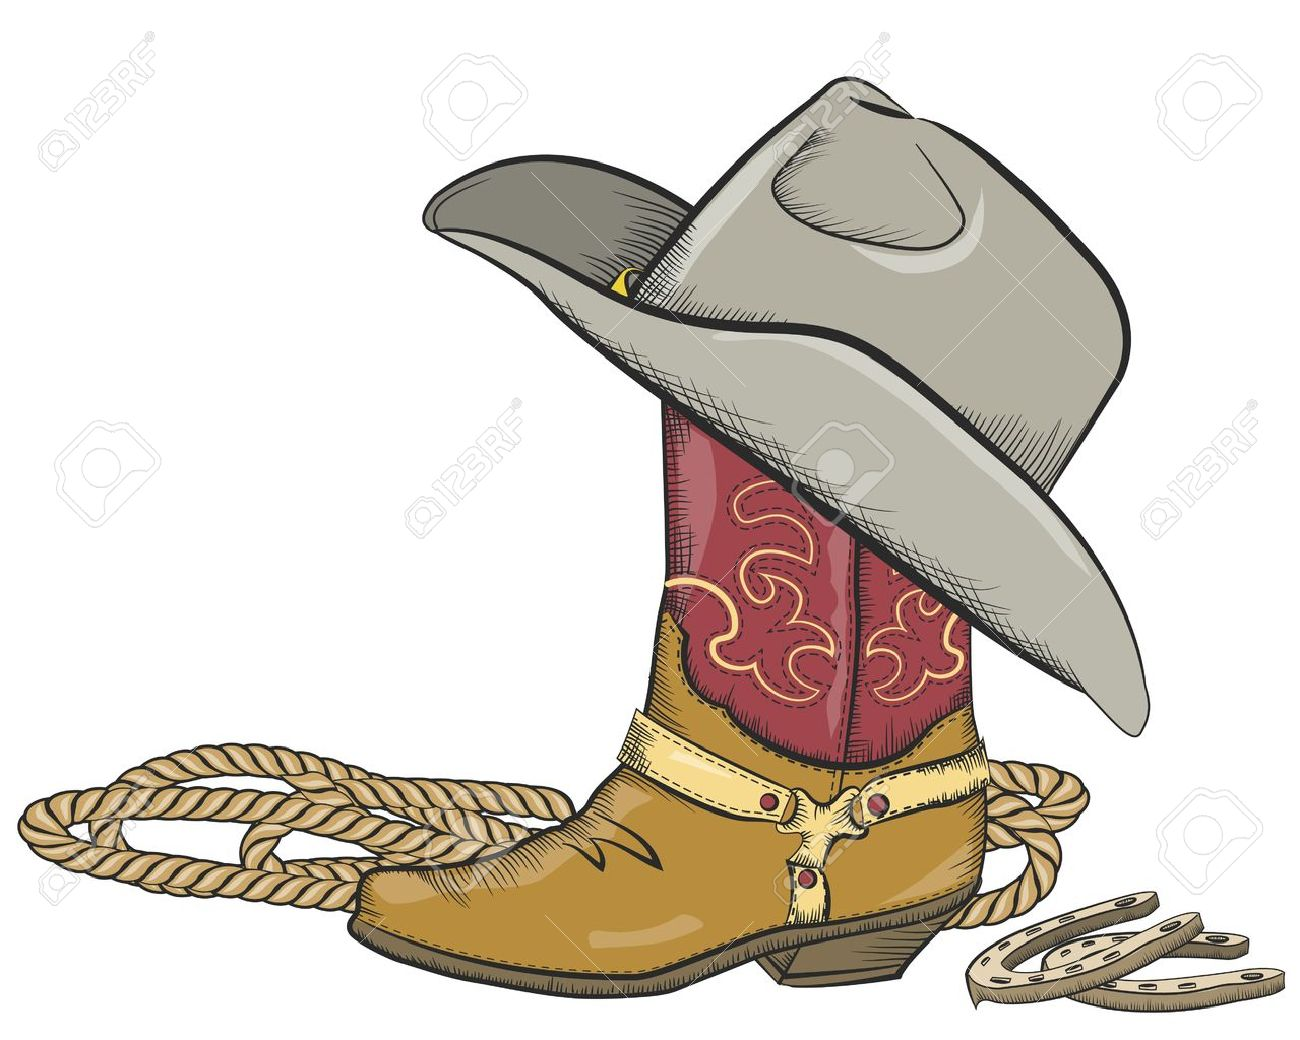 Cowboy boot with western hat isolated Stock Vector - 16957279 be92823d375